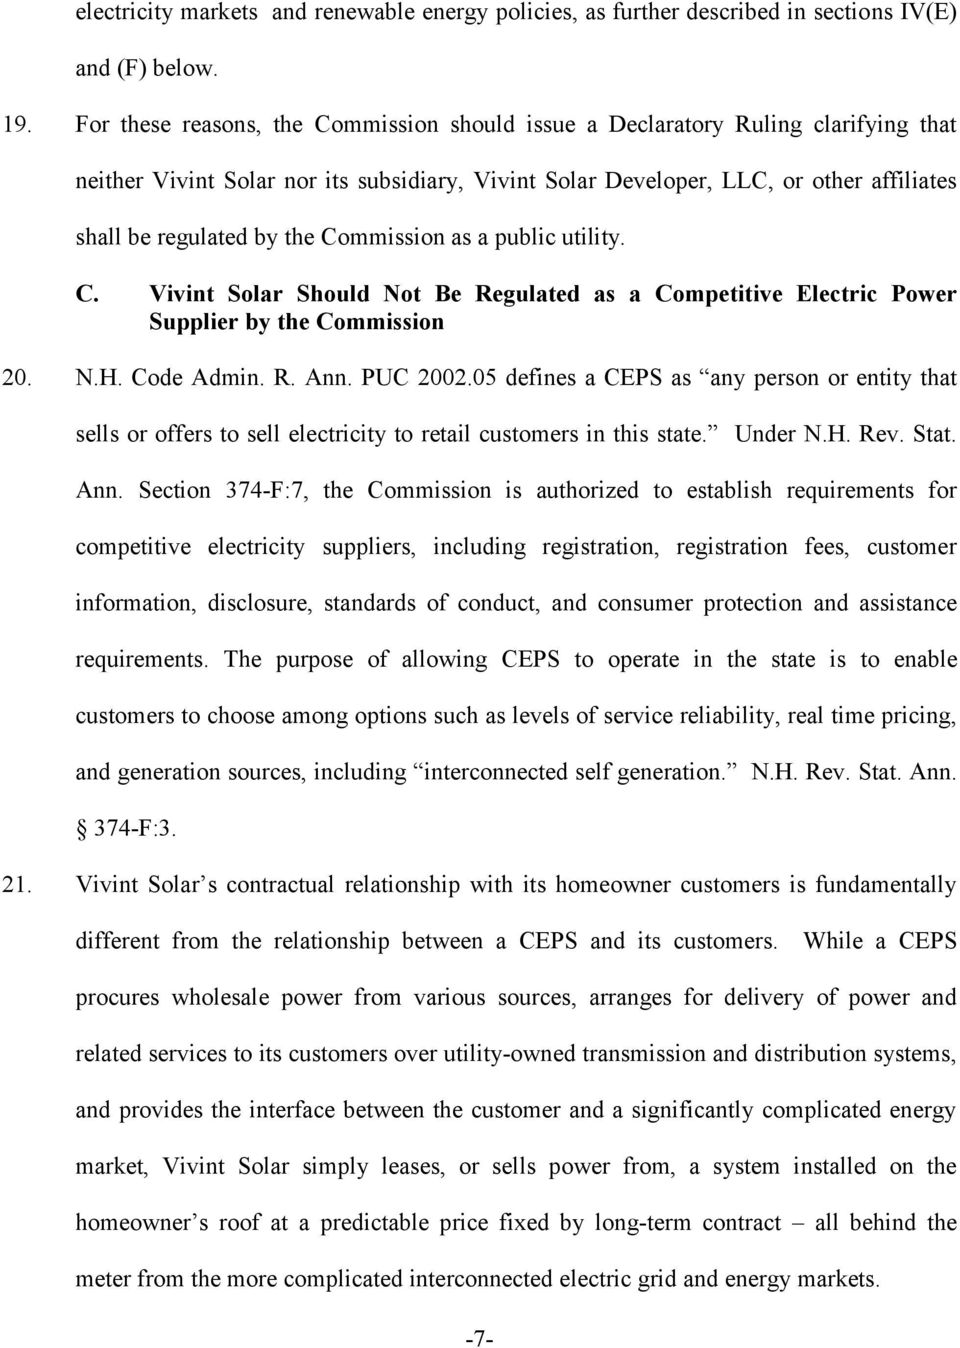 Commission as a public utility. C. Vivint Solar Should Not Be Regulated as a Competitive Electric Power Supplier by the Commission 20. N.H. Code Admin. R. Ann. PUC 2002.